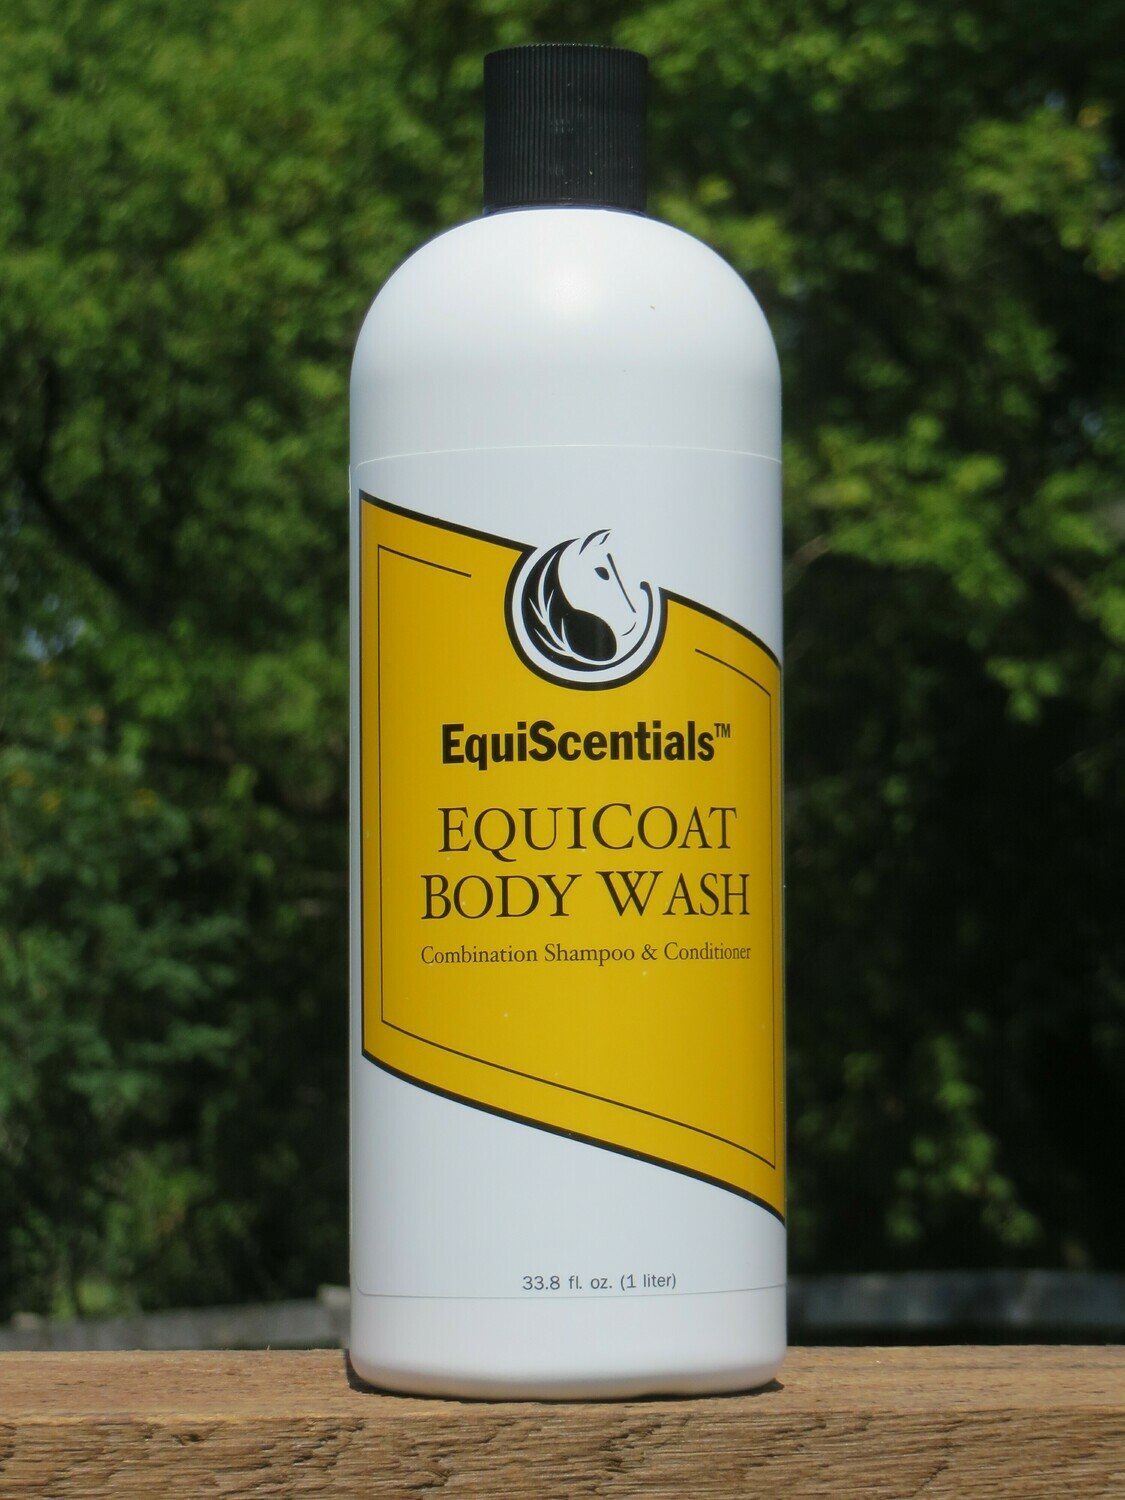 EquiCoat Body Wash - Lifts away dirt and dead skin